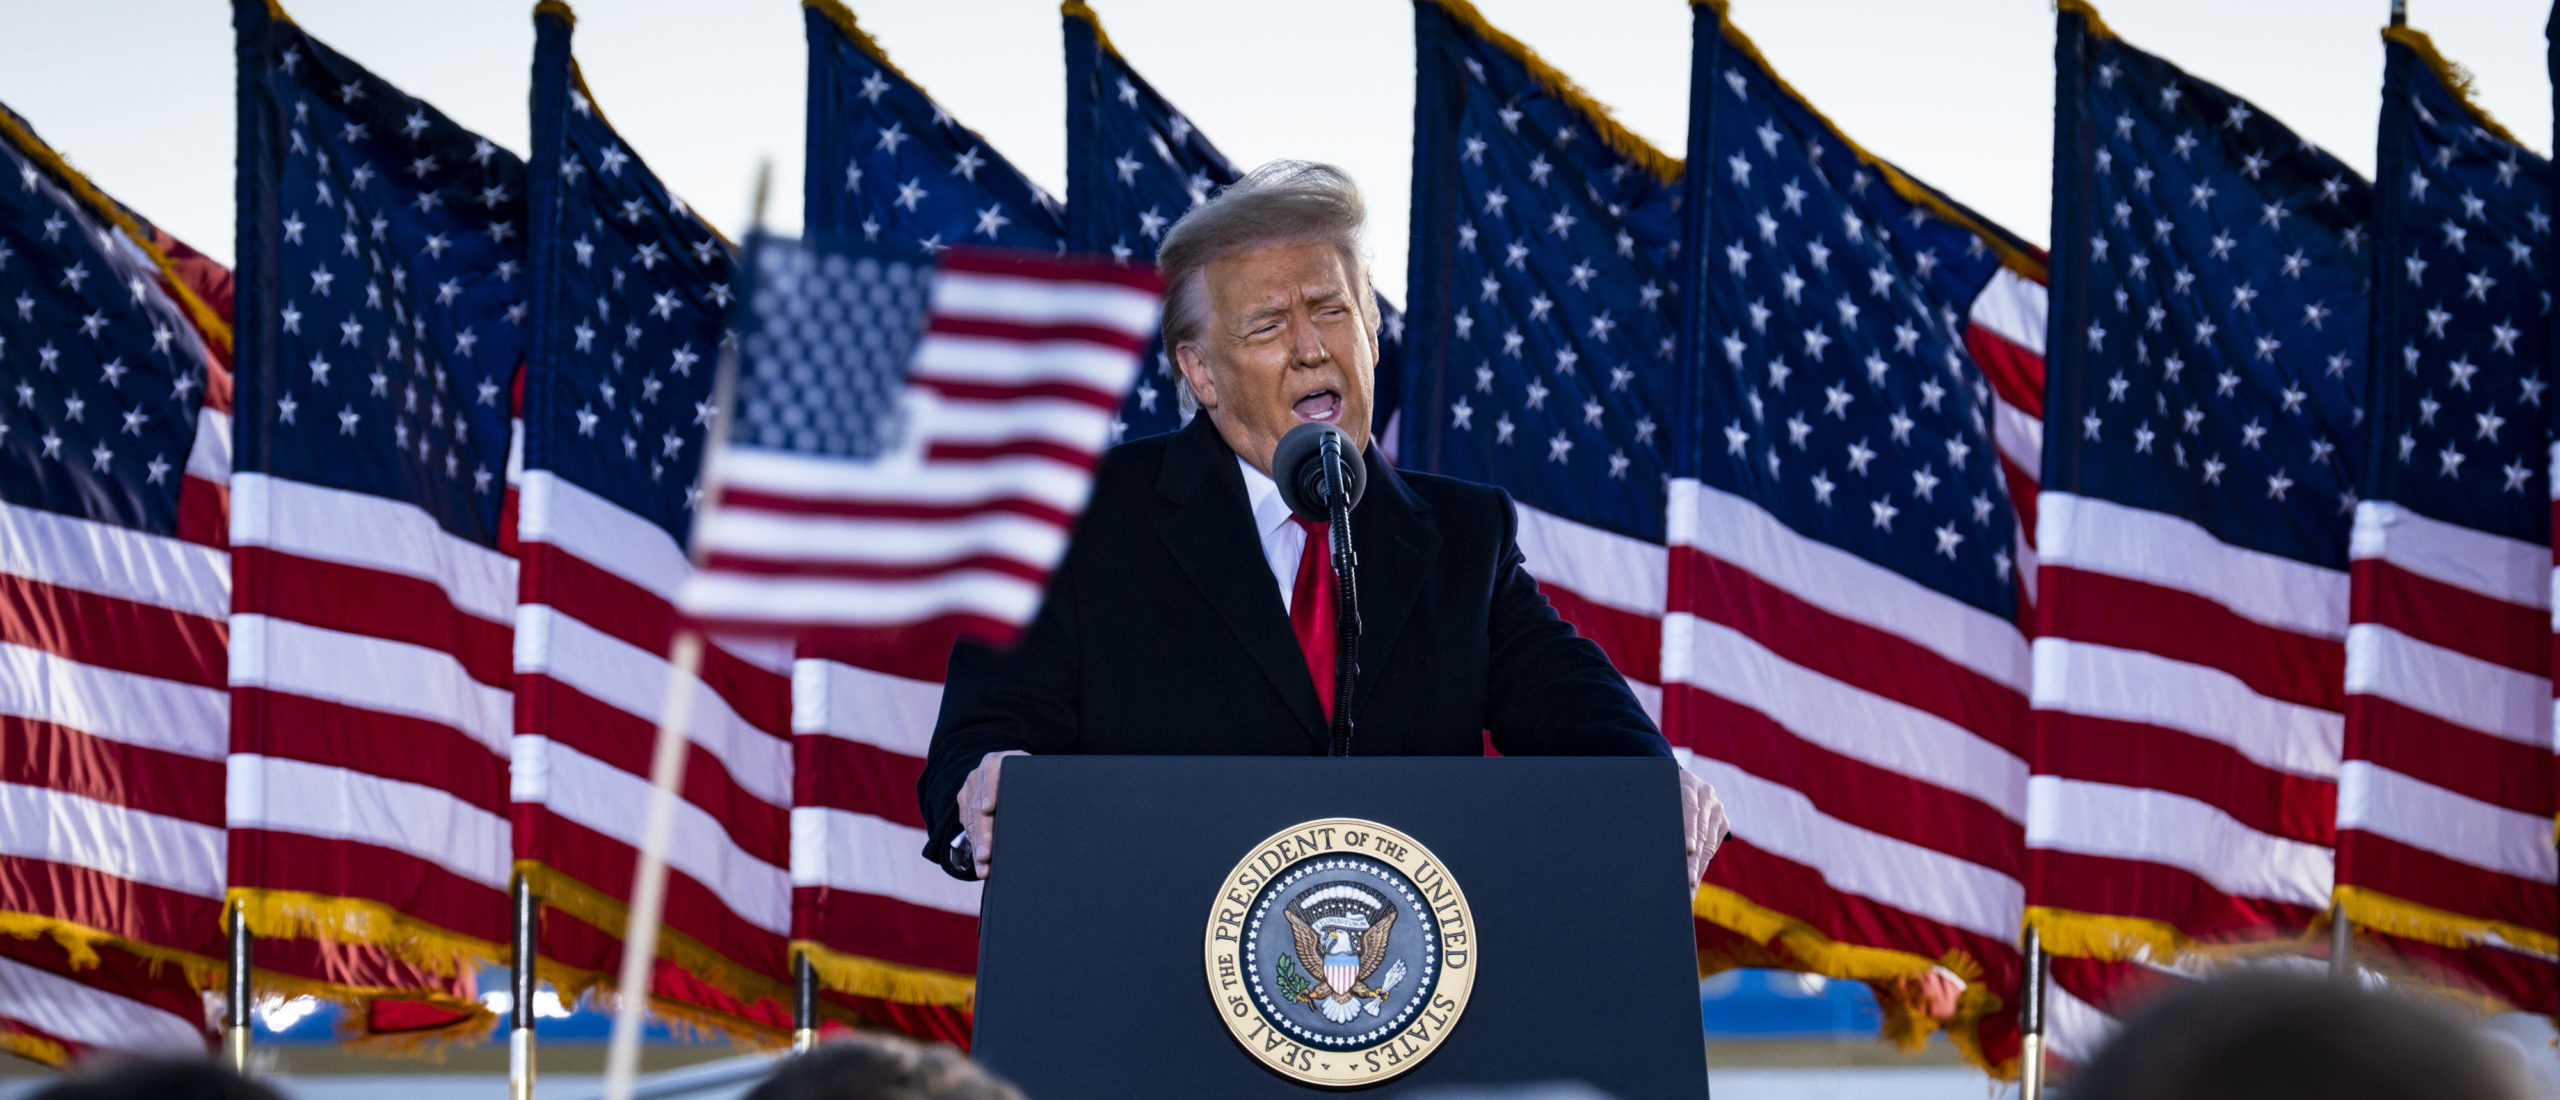 JOINT BASE ANDREWS, MARYLAND - JANUARY 20: President Donald Trump speaks to supporters at Joint Base Andrews before boarding Air Force One for his last time as President on January 20, 2021 in Joint Base Andrews, Maryland. (Photo by Pete Marovich - Pool/Getty Images)